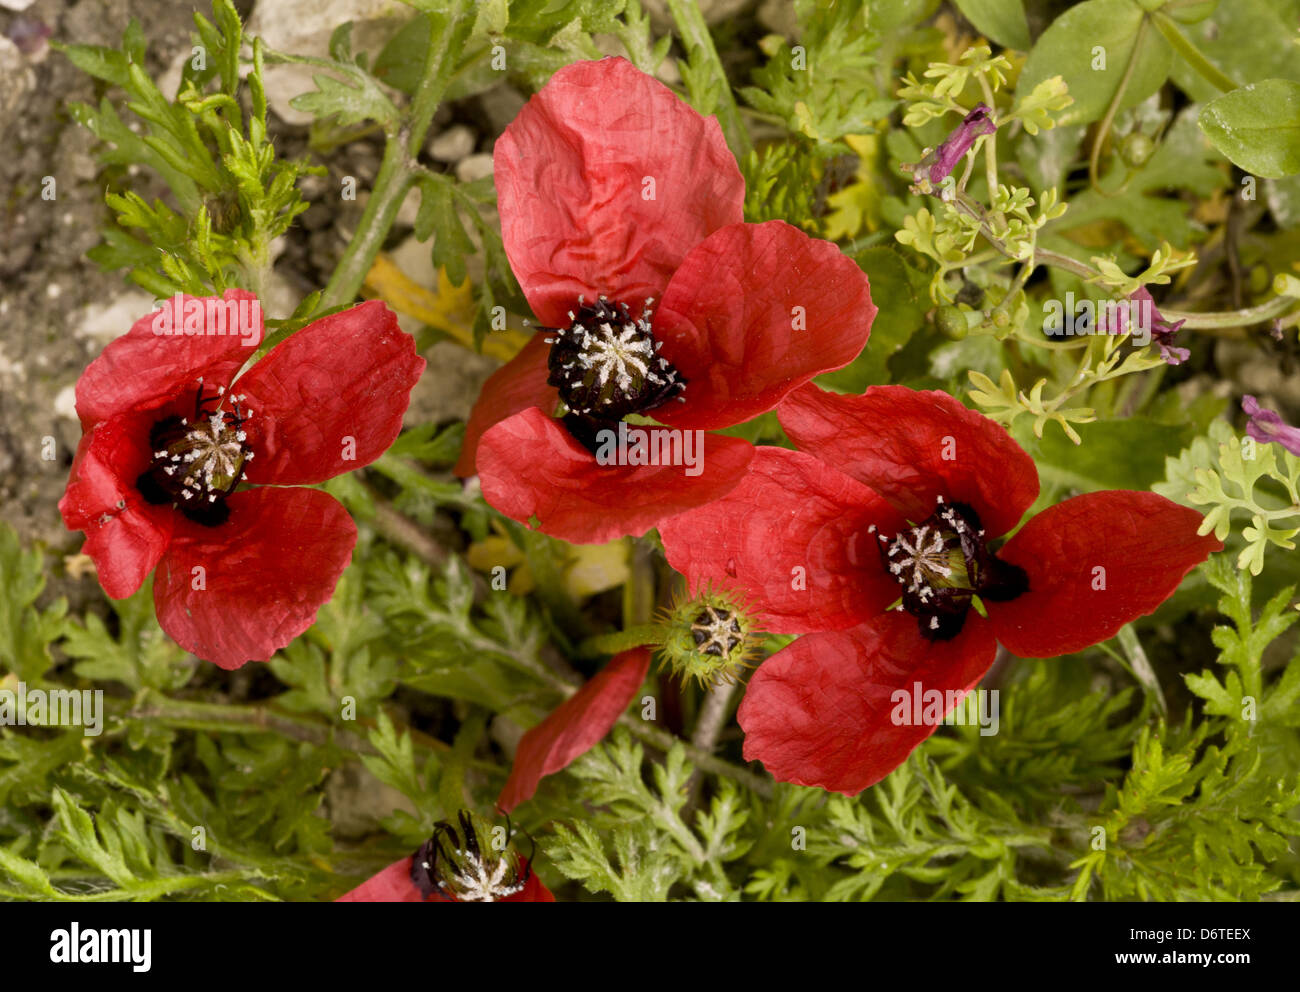 Rough Poppy (Papaver hybridum) in flower and fruit, growing on arable land, Ranscombe Farm Nature Reserve, Kent, Stock Photo